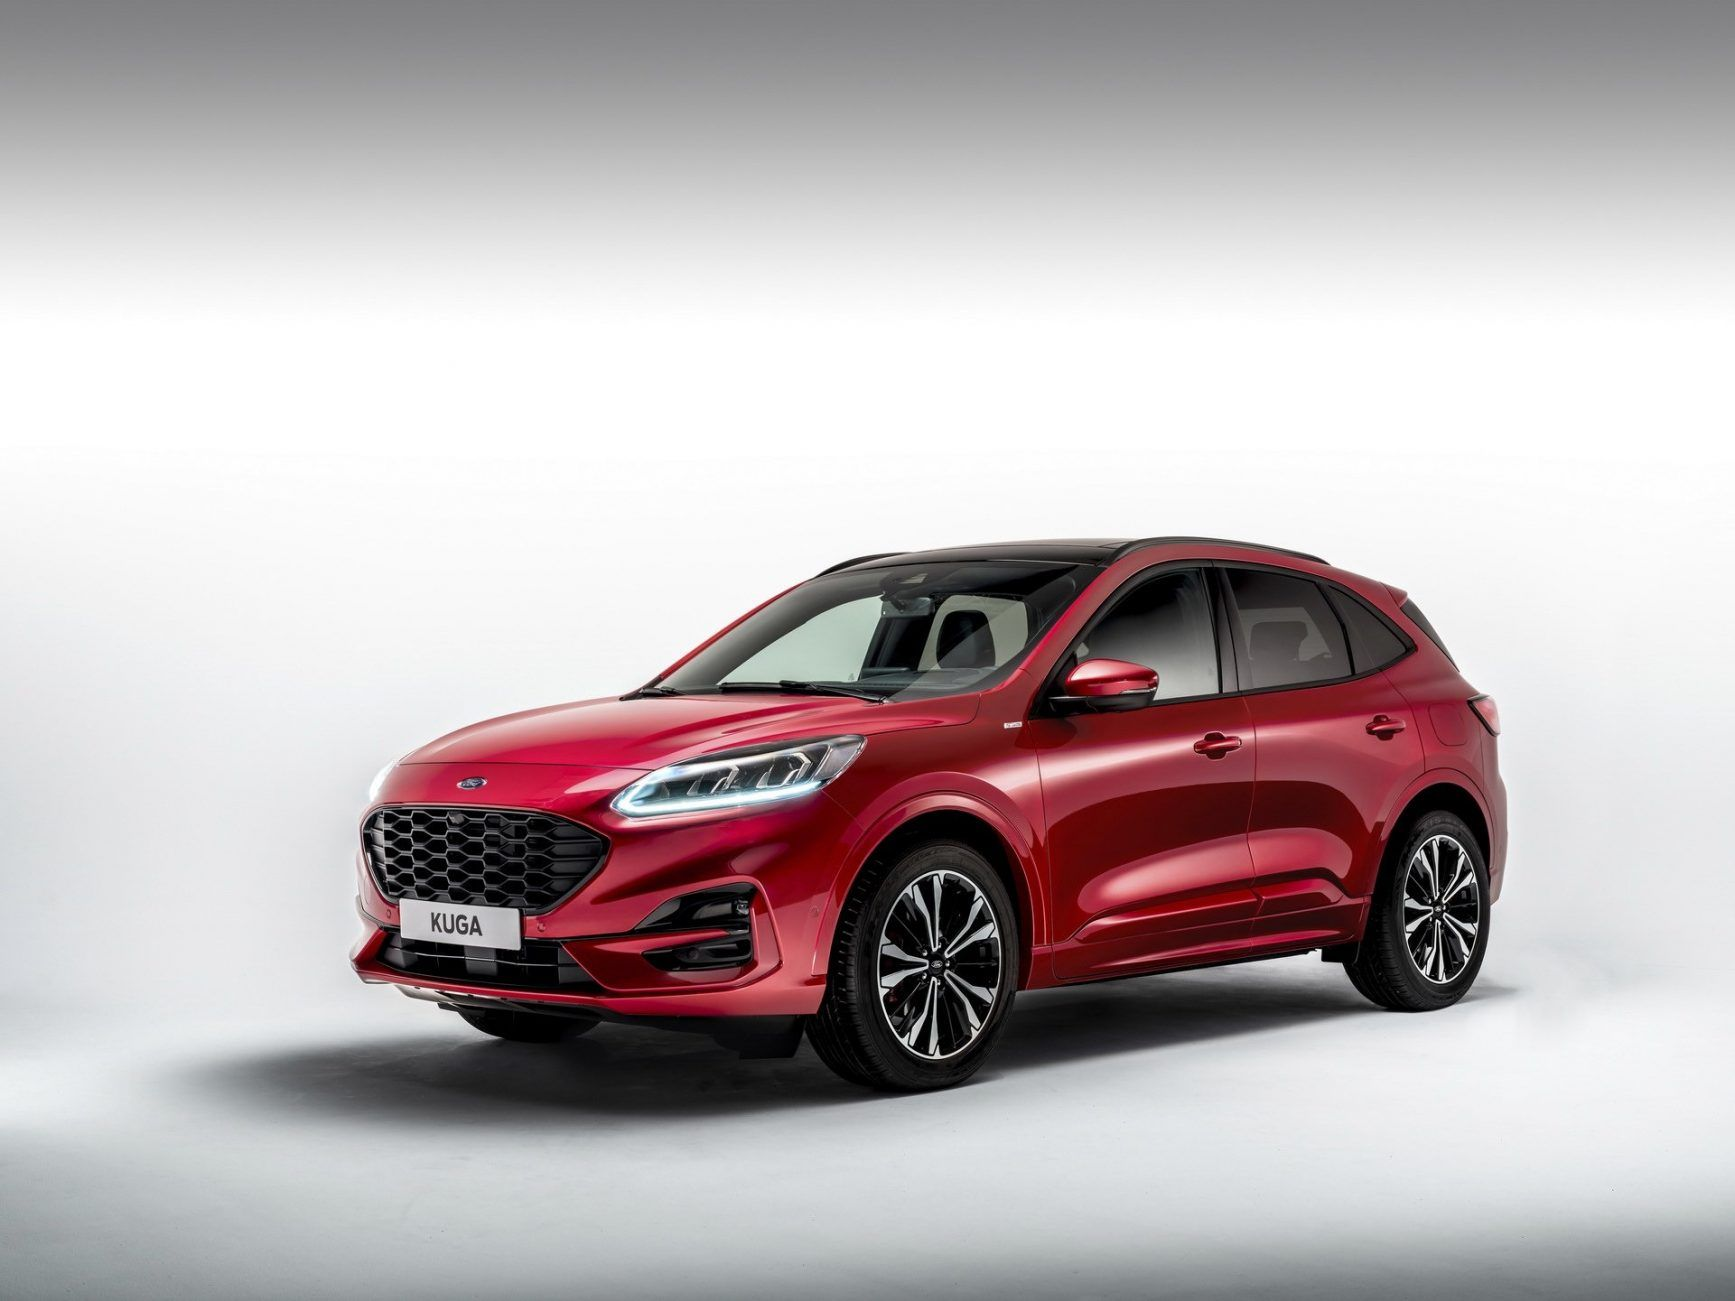 2020 Ford Kuga Price Styling Engine Release Date Photos